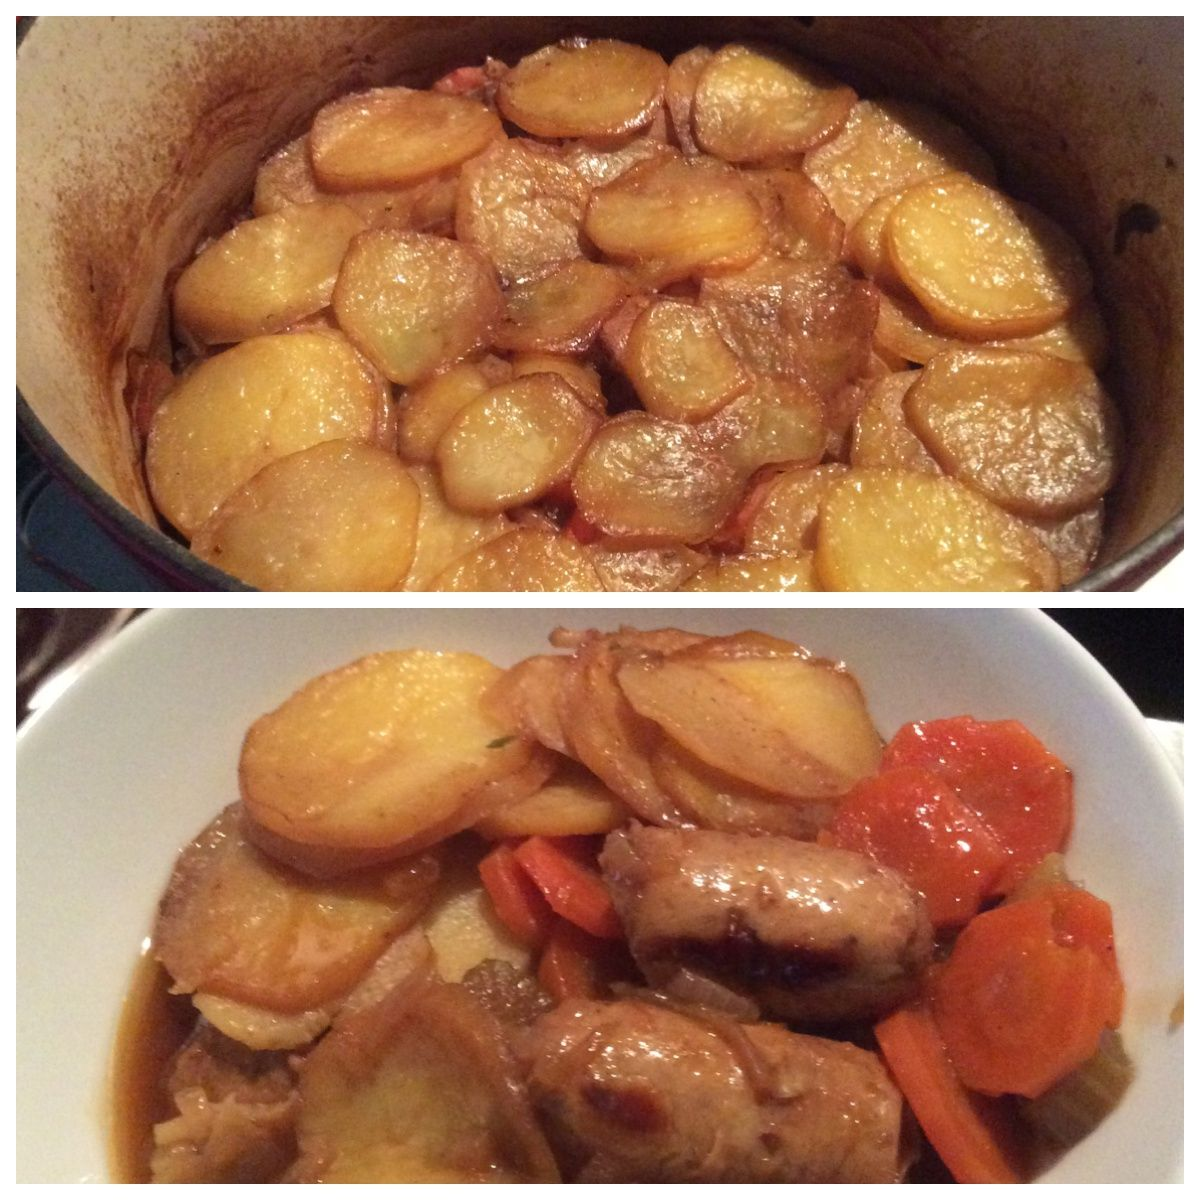 Dublin Coddle, from the new SW recipe book I used the new SW Syn free sausages from Iceland to make the whole dish Syn free on EE I also added carrot and celery to the dish as I love my veggies !